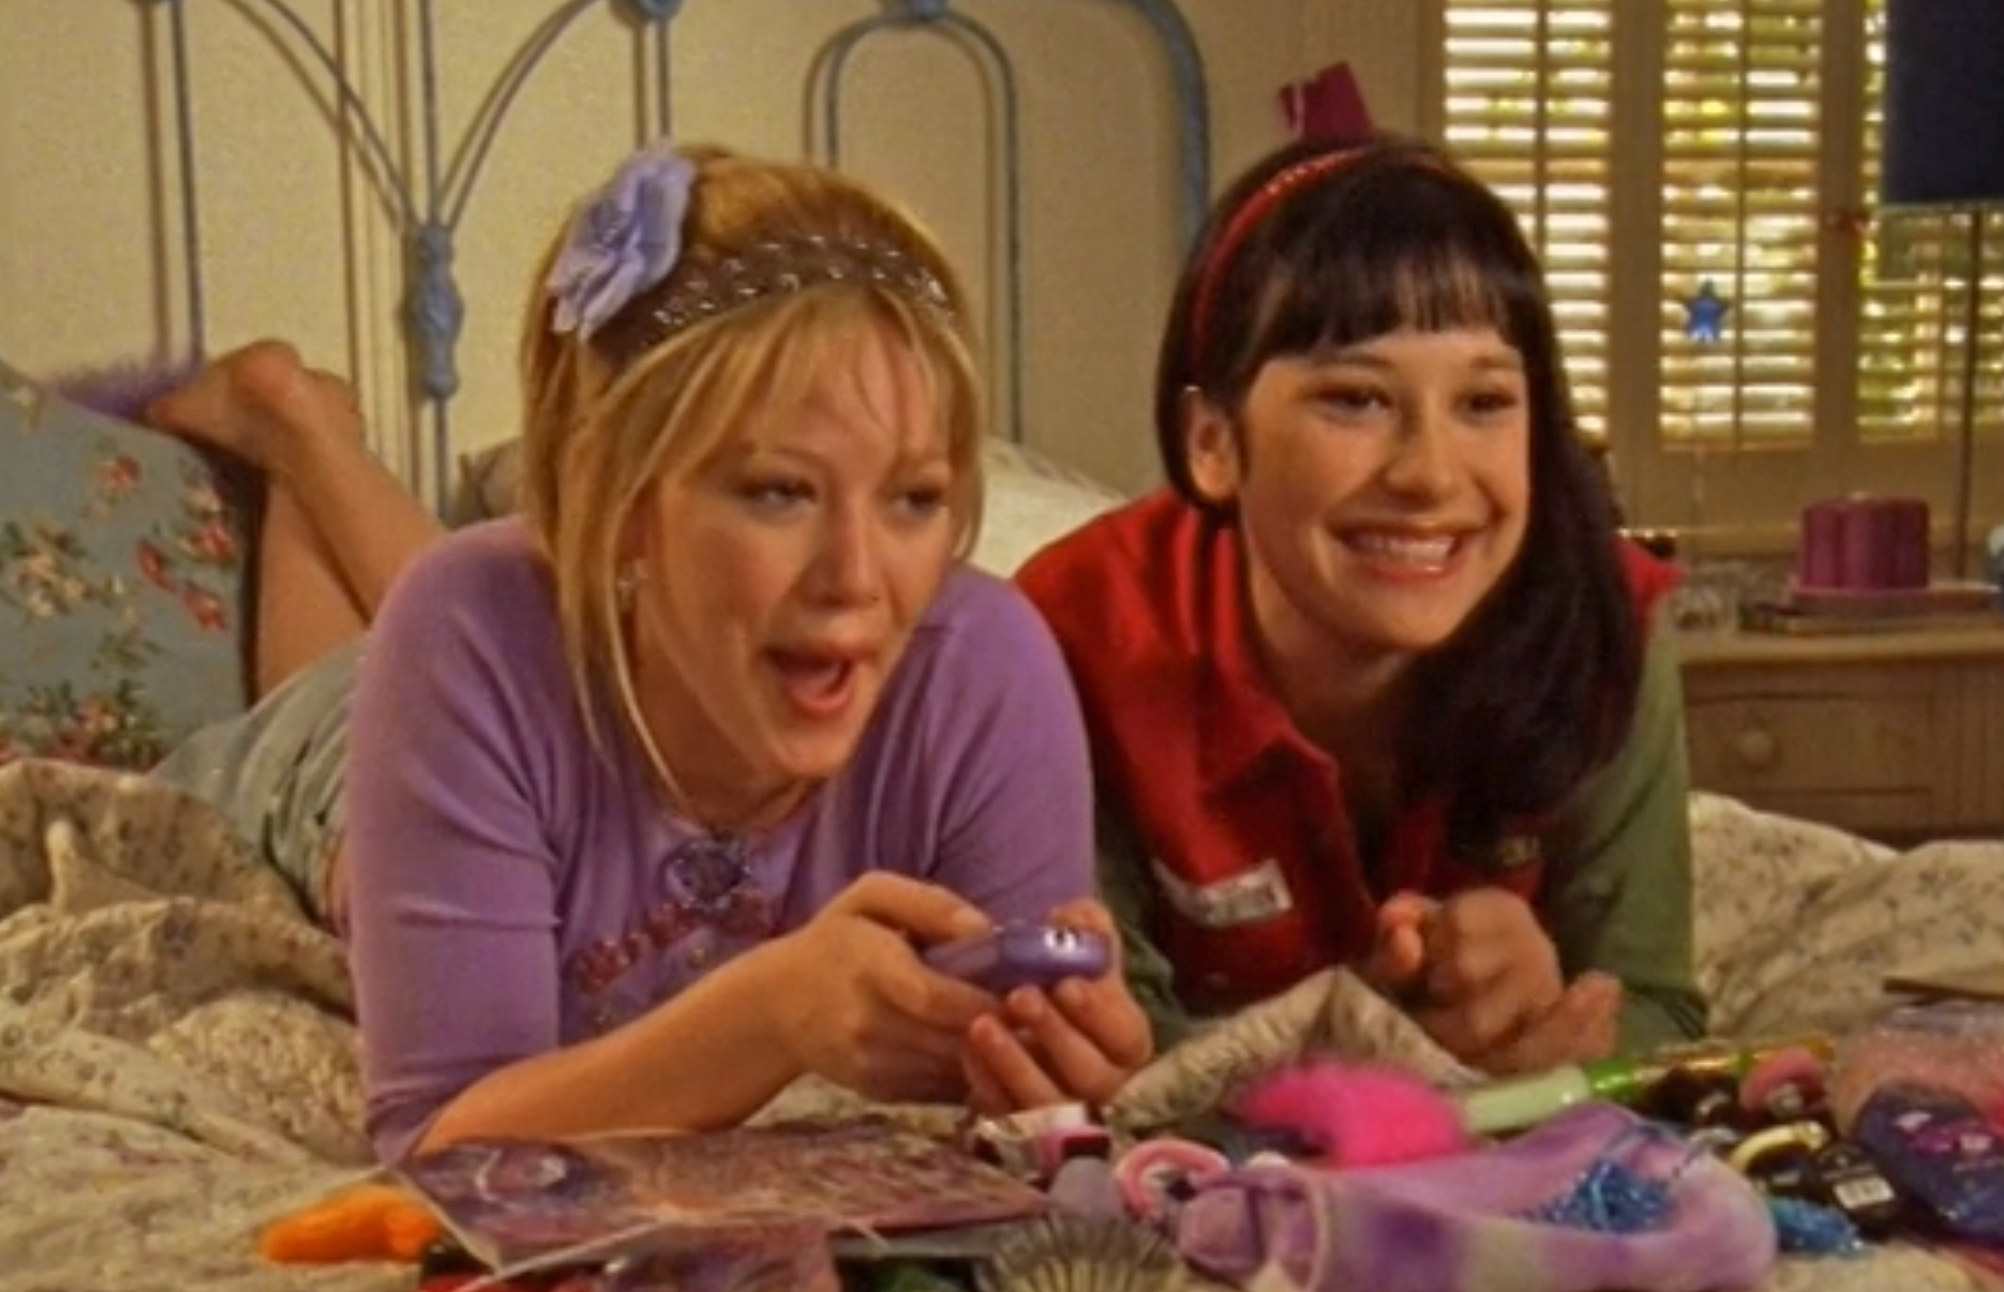 Lizzie and Miranda sit lie on the bed with magazines and a cellphone in front of them